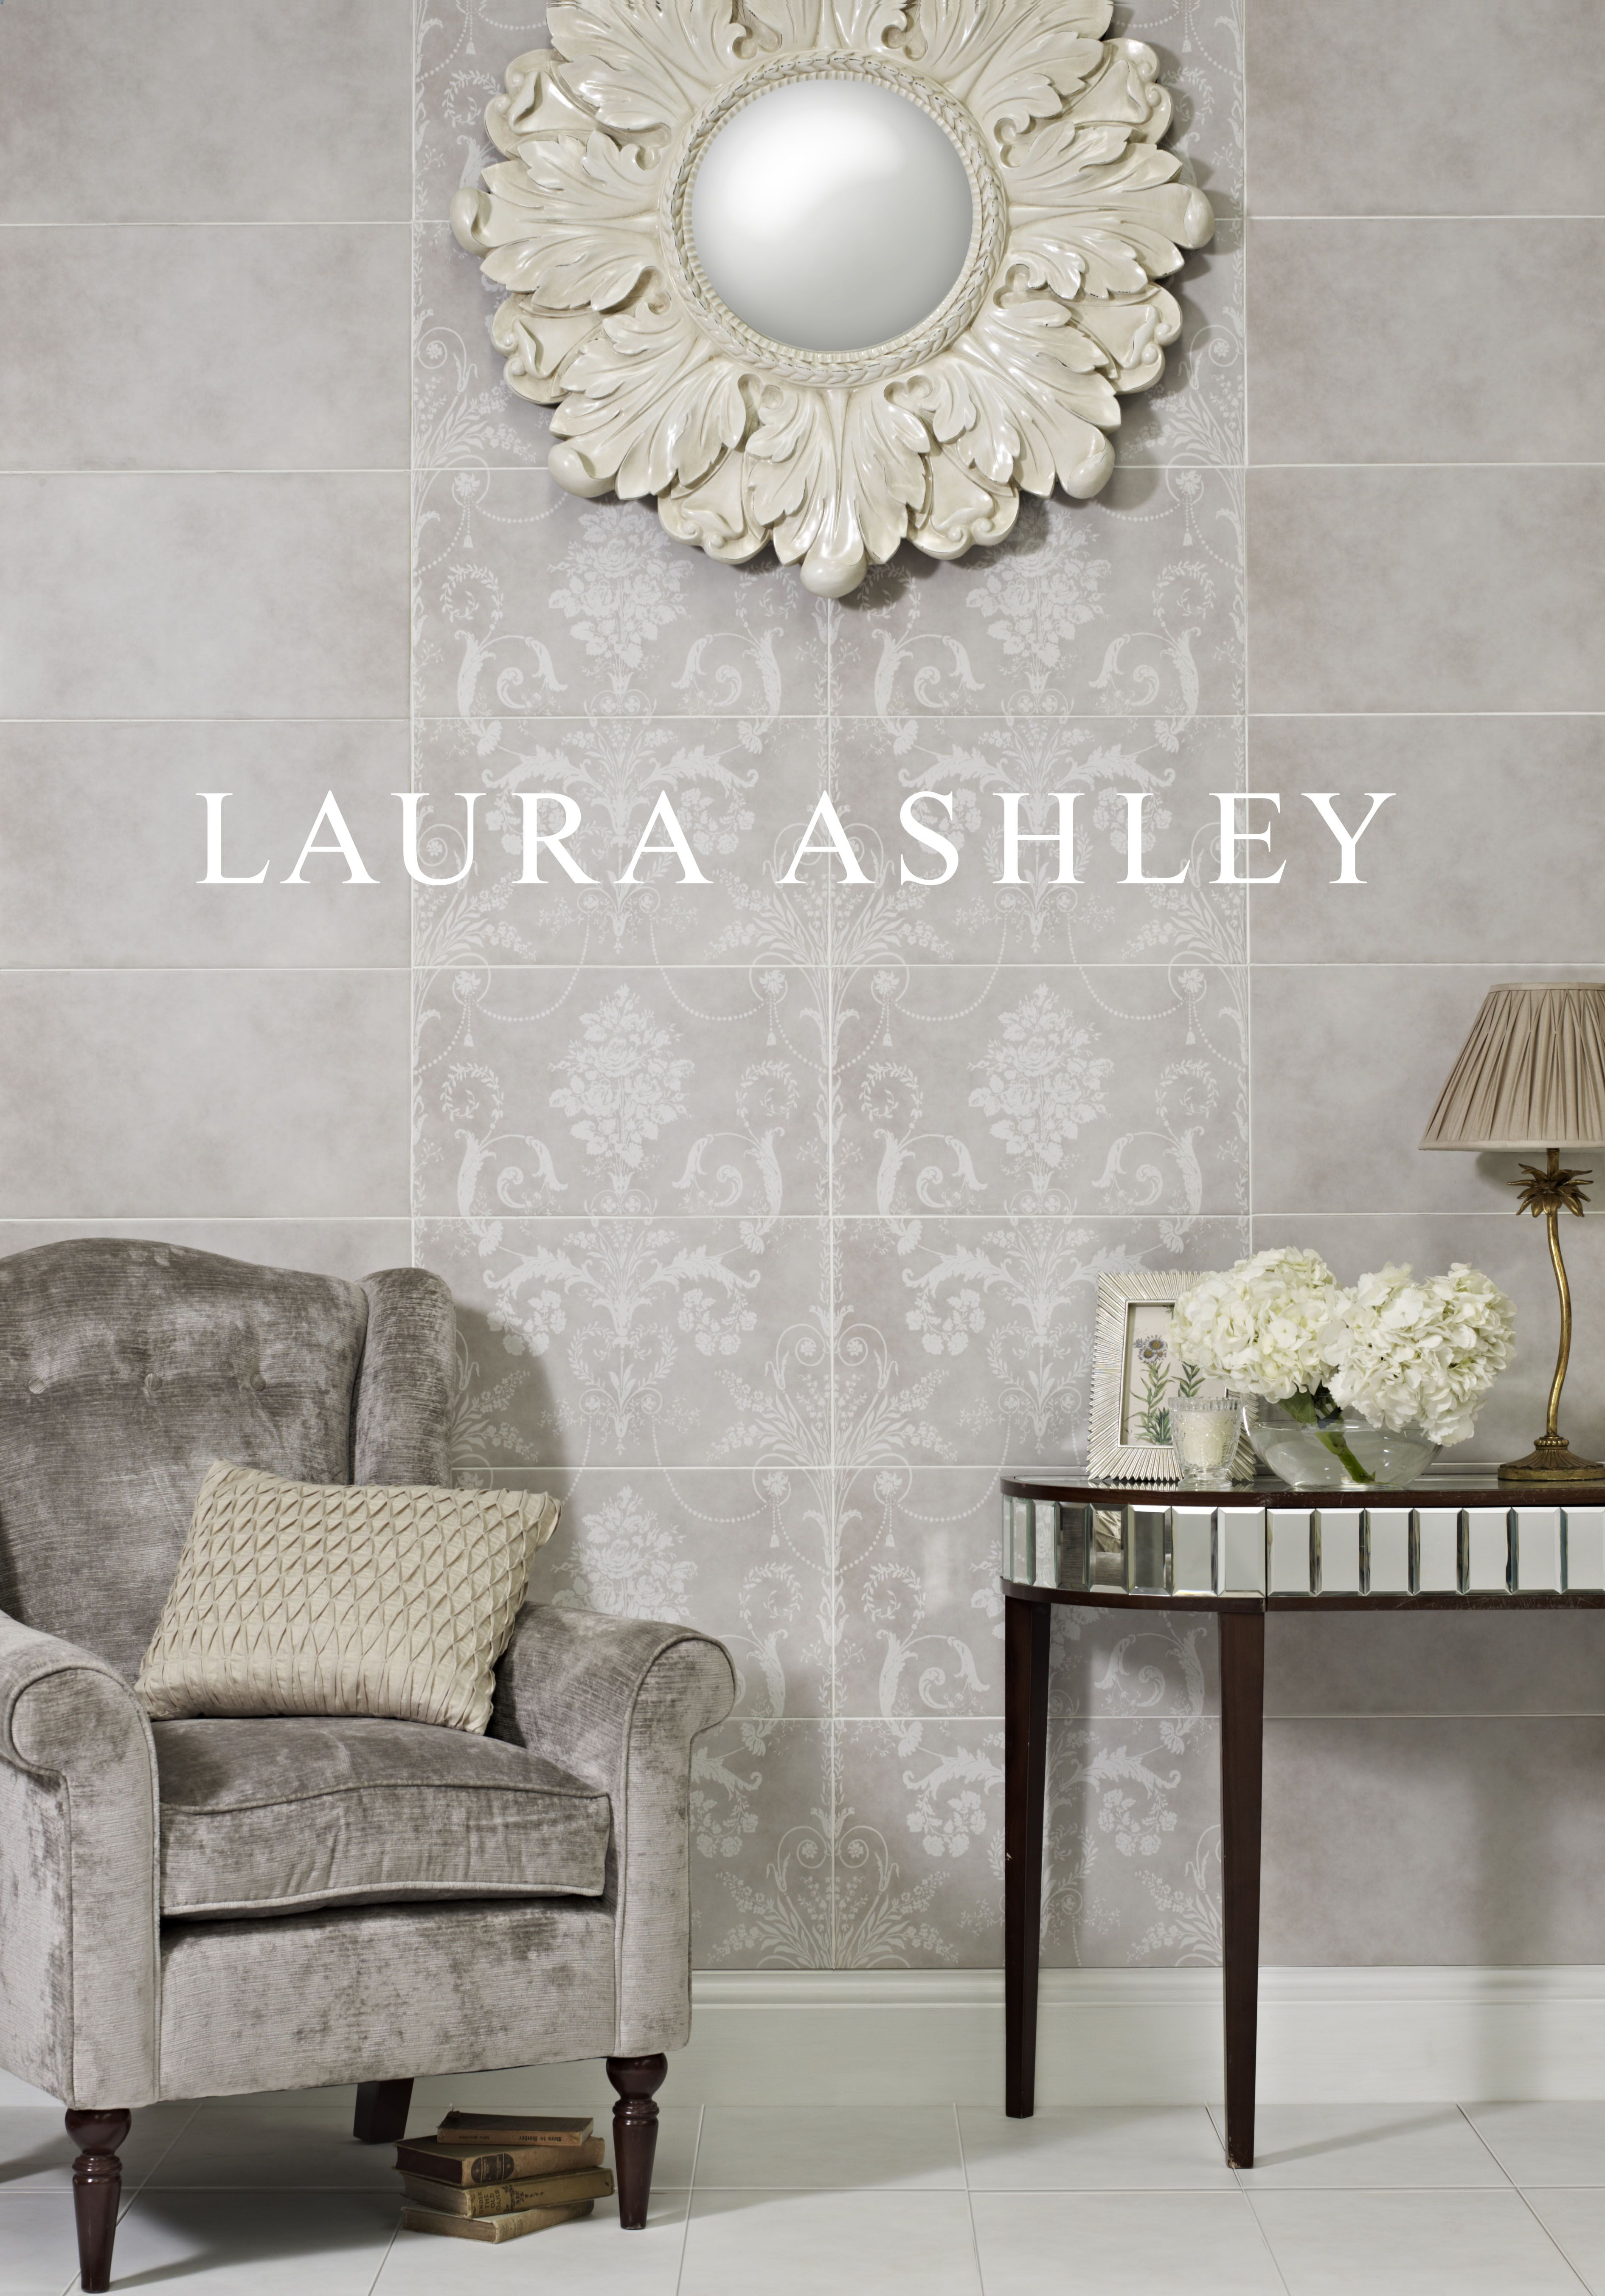 Laura ashley josette decor and plain dove grey josette plain in laura ashley josette decor and plain dove grey josette plain in white tiles from house dailygadgetfo Images